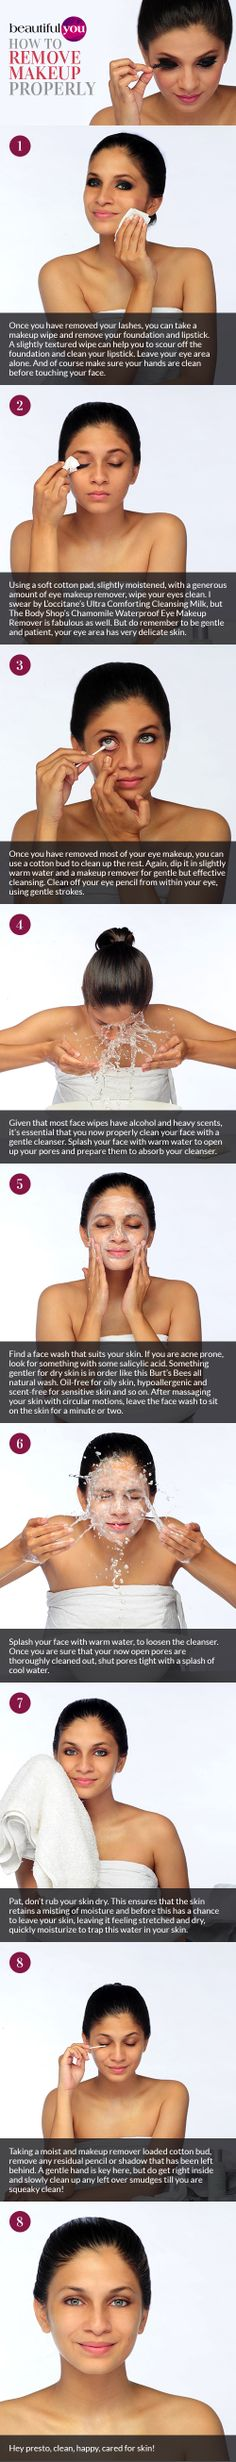 The right way to #remove your #makeup | Read more on #BeautifulYou #Pakistan #skincare